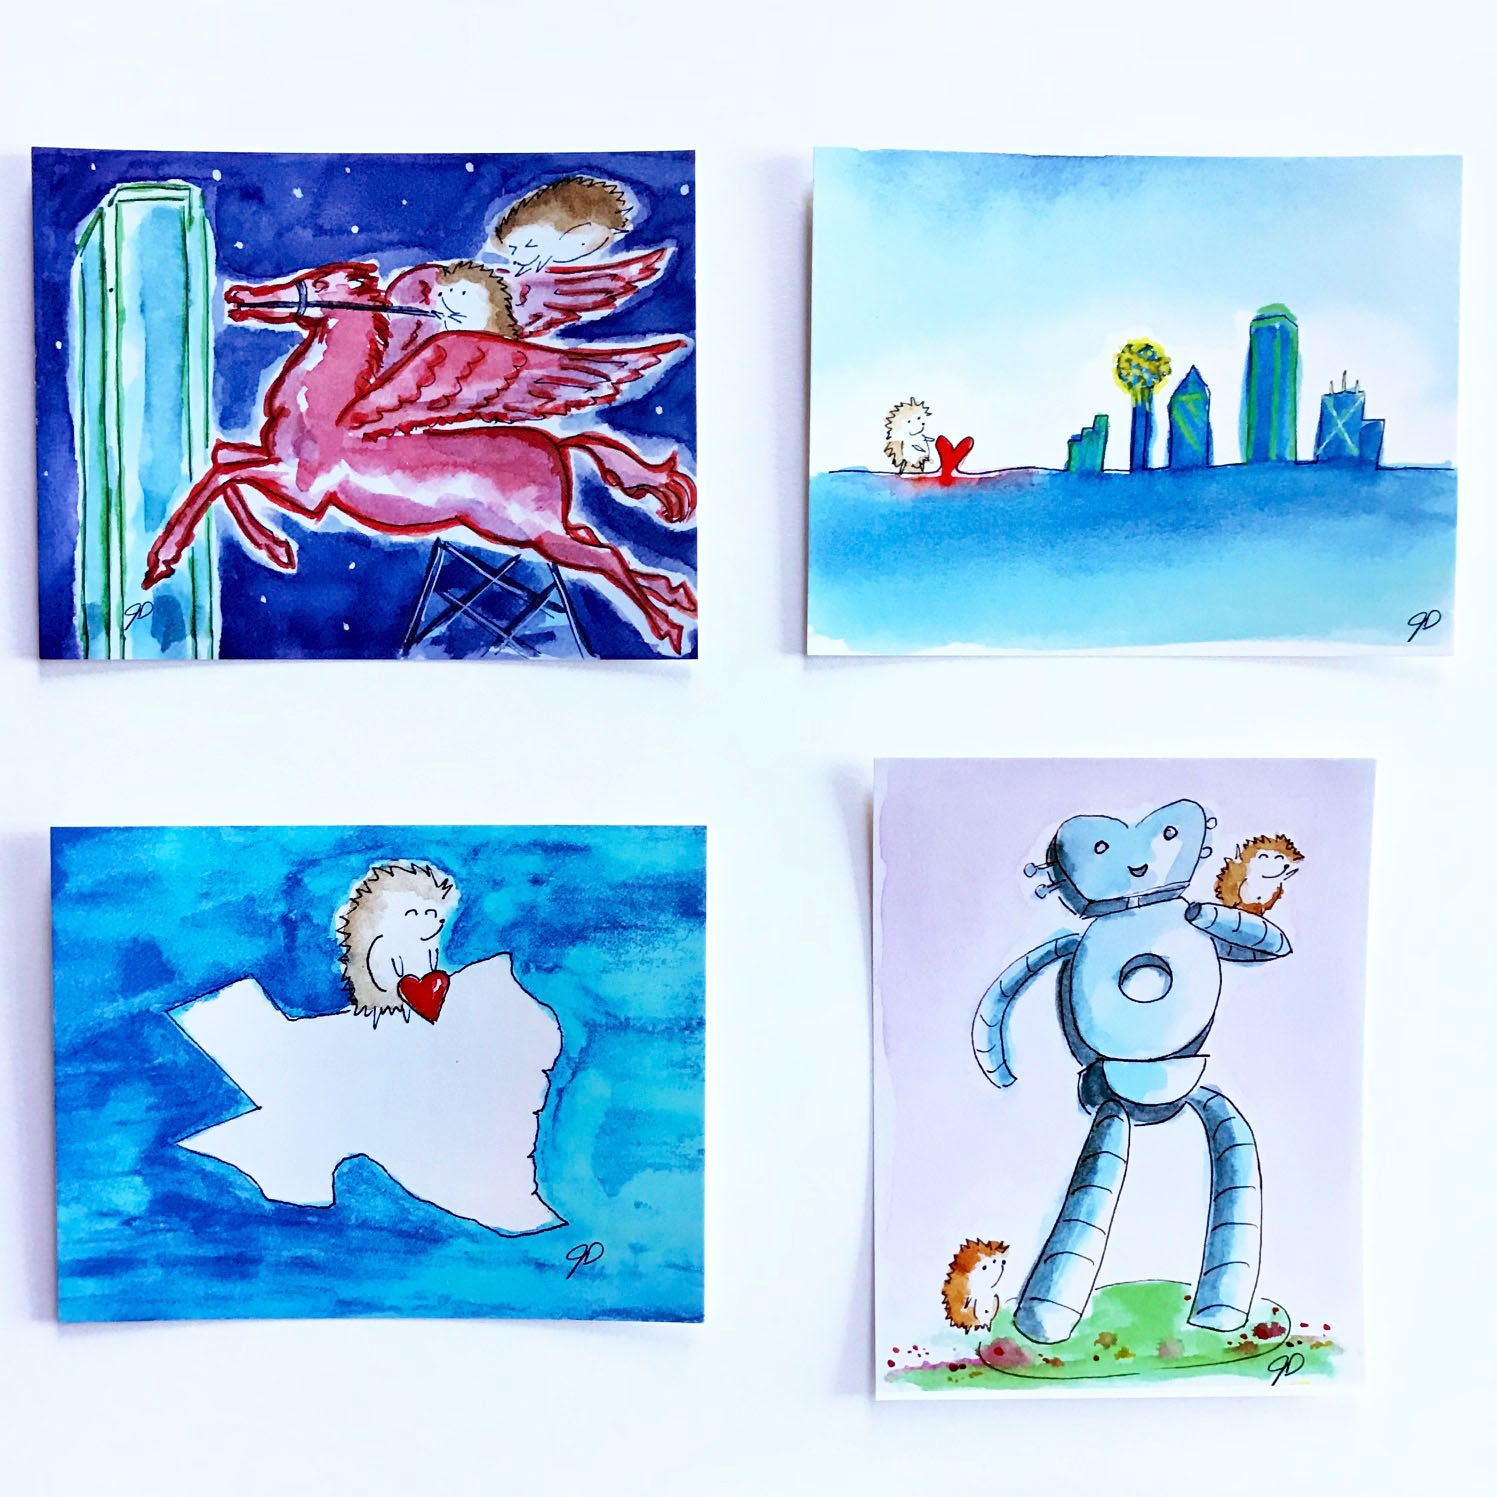 Dallas Postcard Surprise (set of 2)